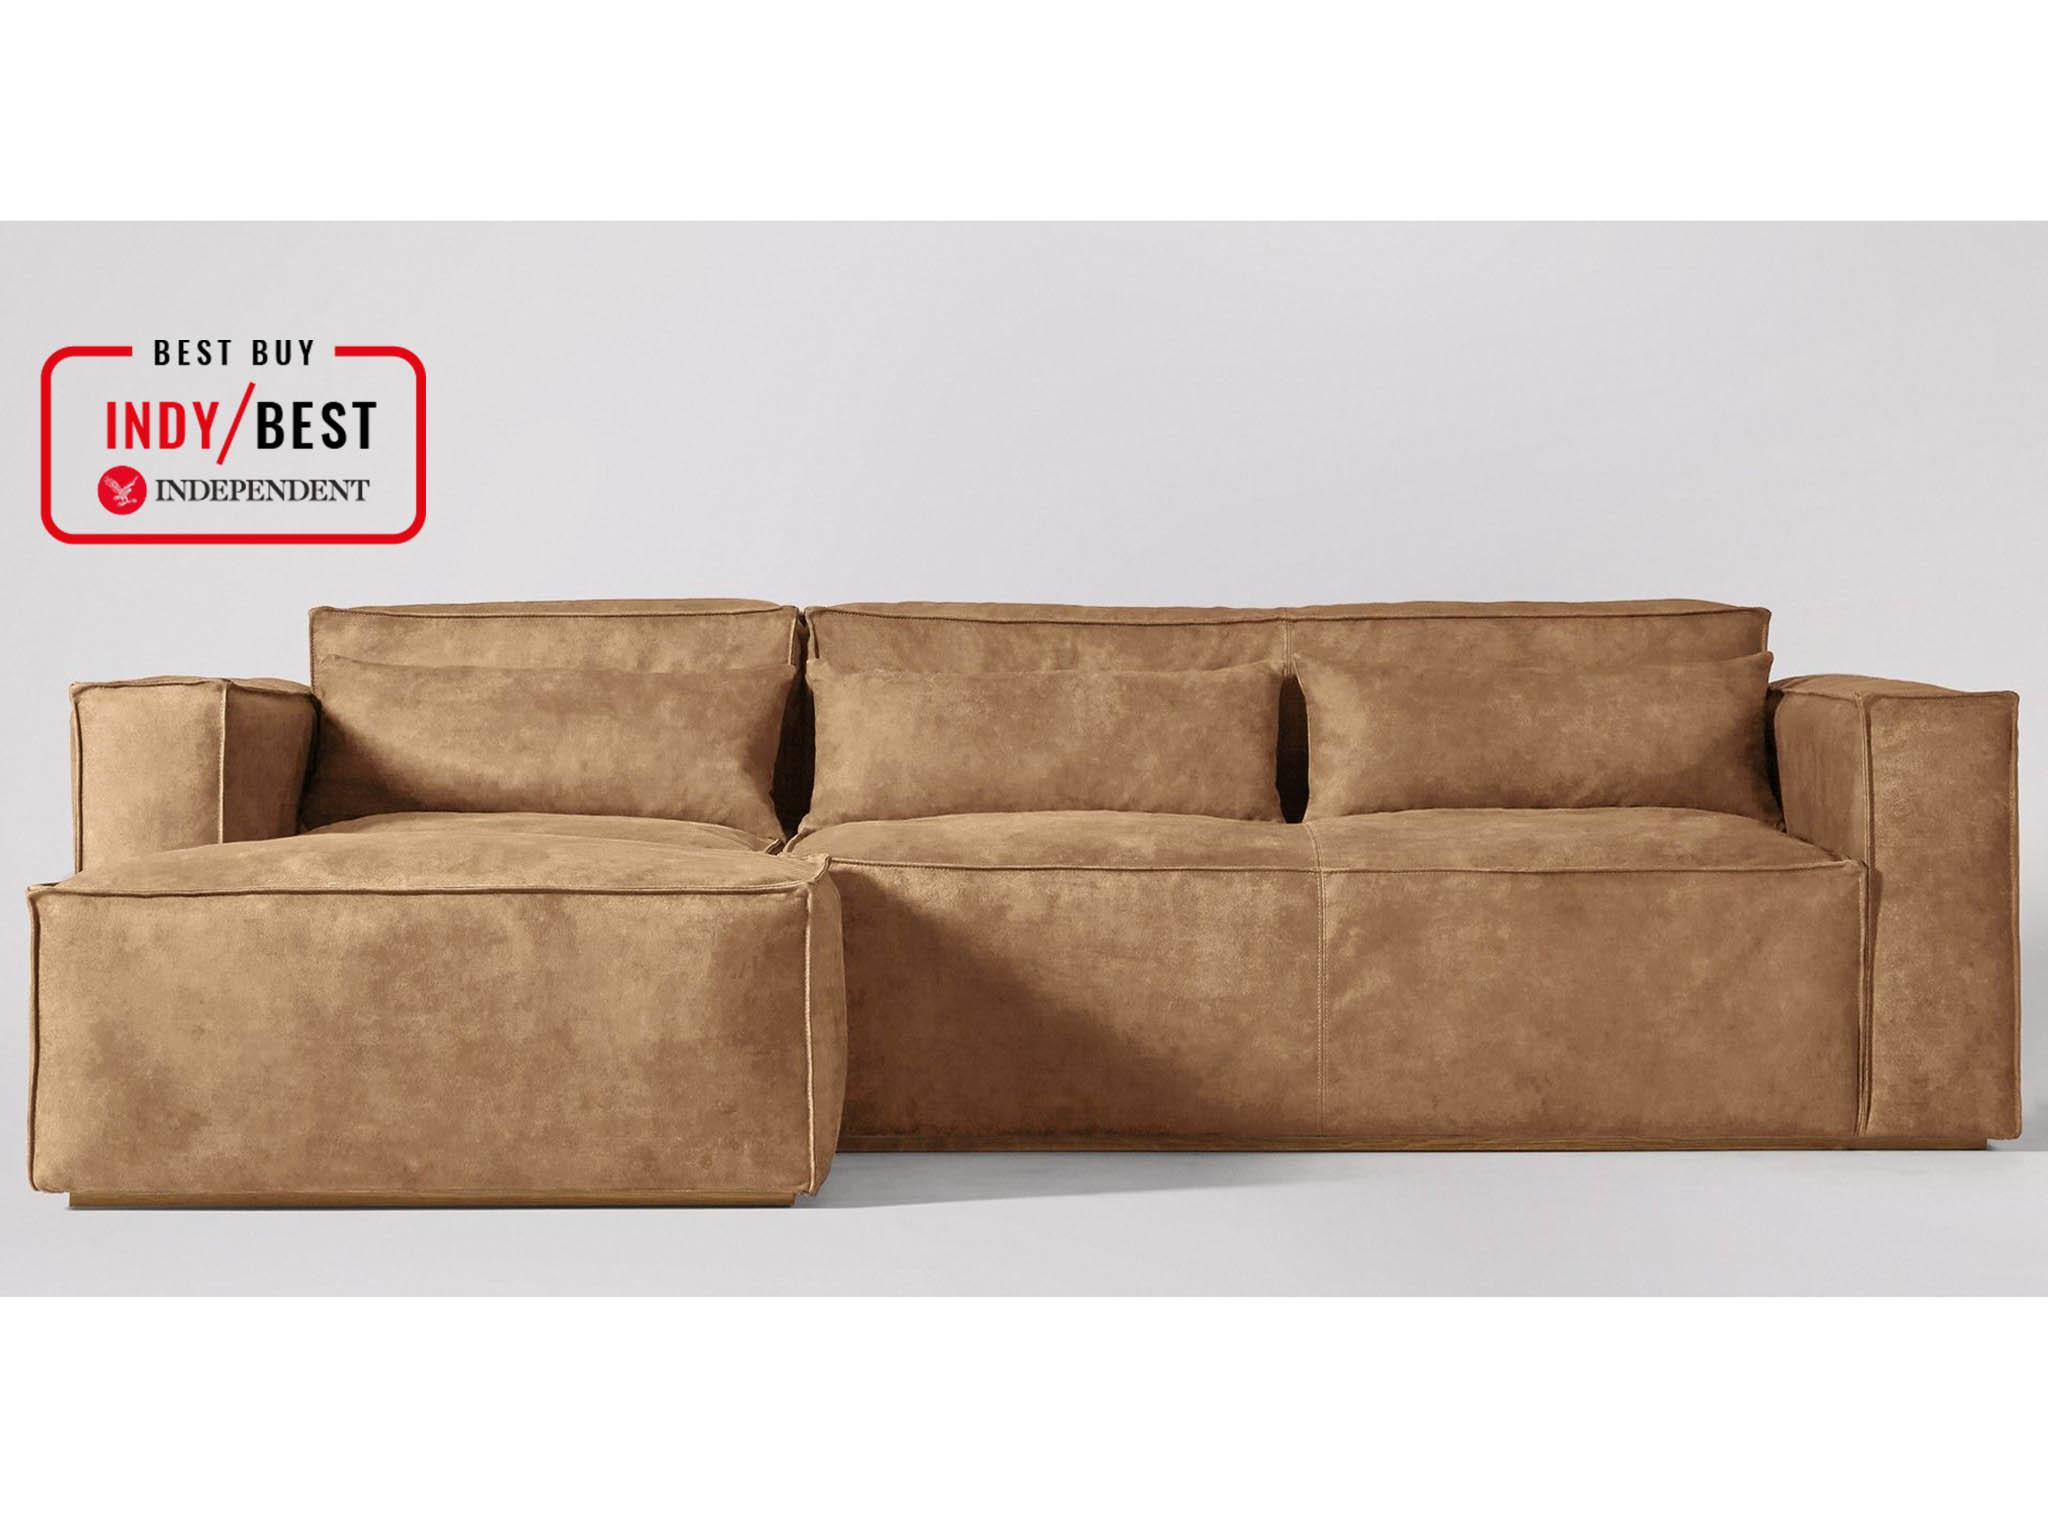 10 Best Leather Sofas The Independent regarding dimensions 2048 X 1536